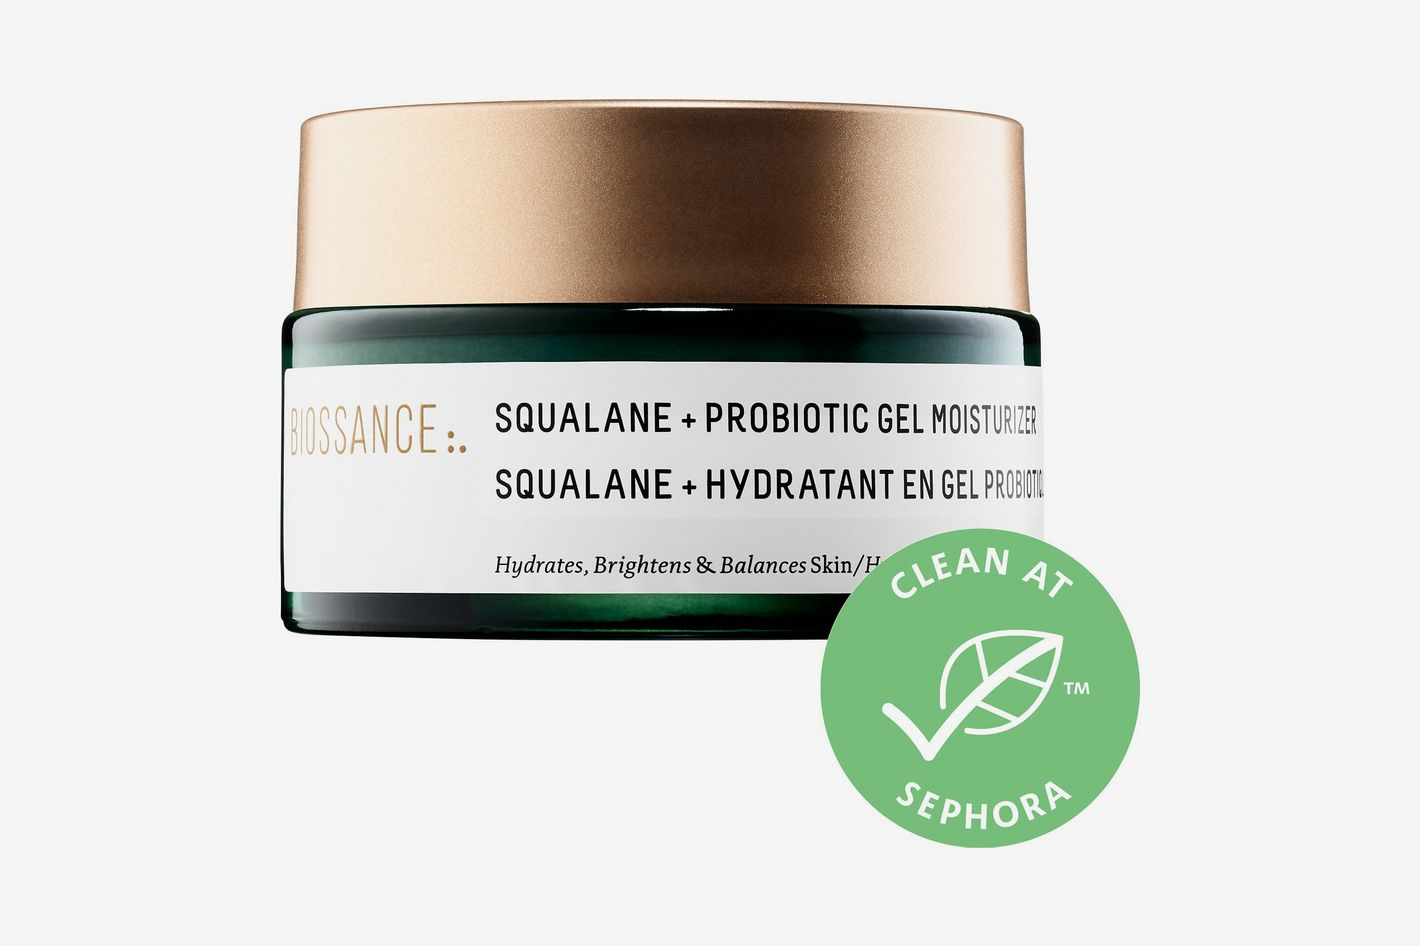 Biossance Squalane and Probiotic Gel Moisturizer